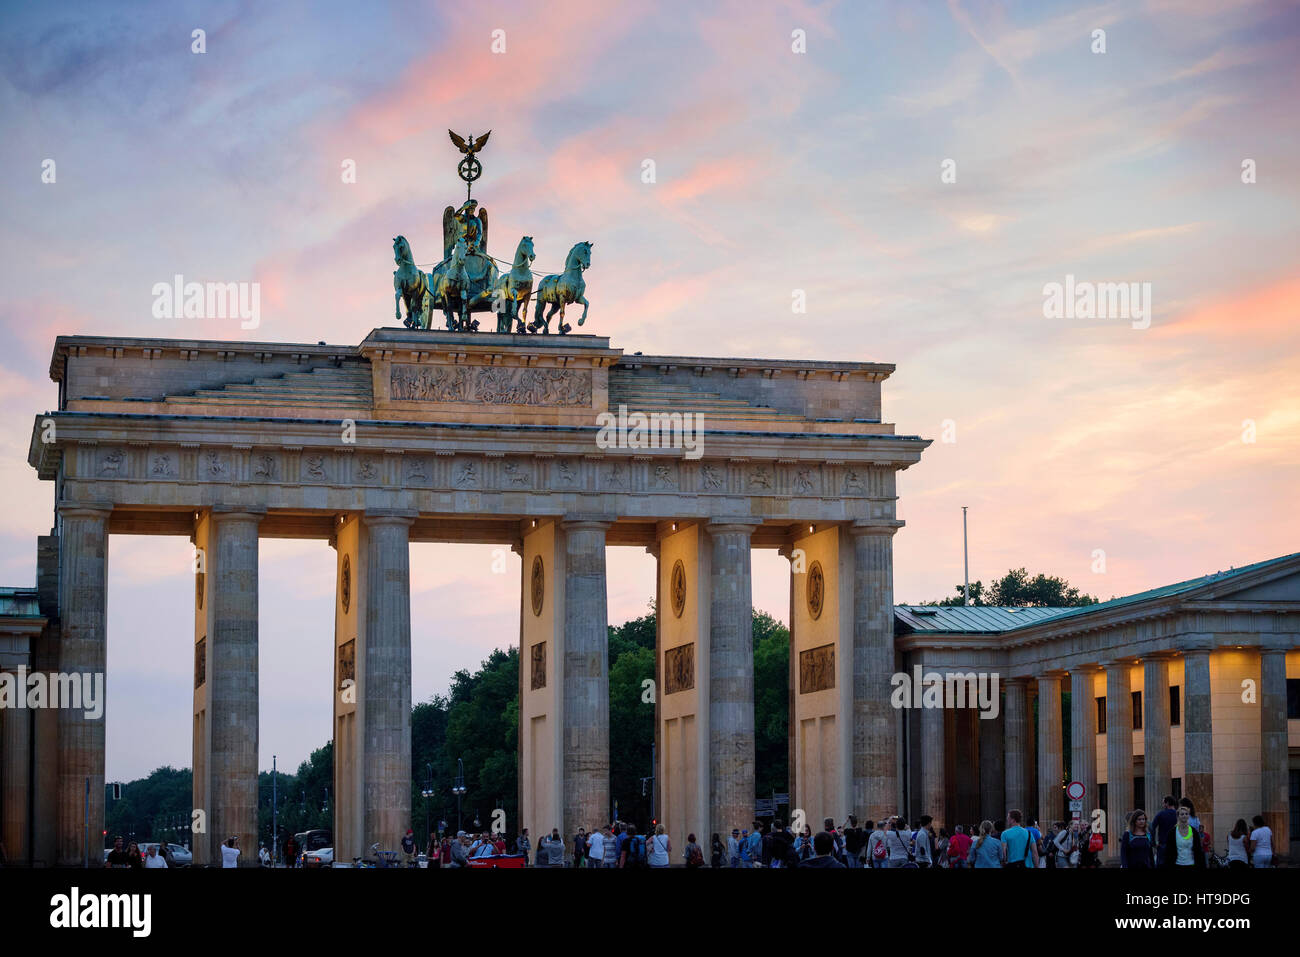 Berlin. Germany. The Brandenburg Gate at sunset. - Stock Image